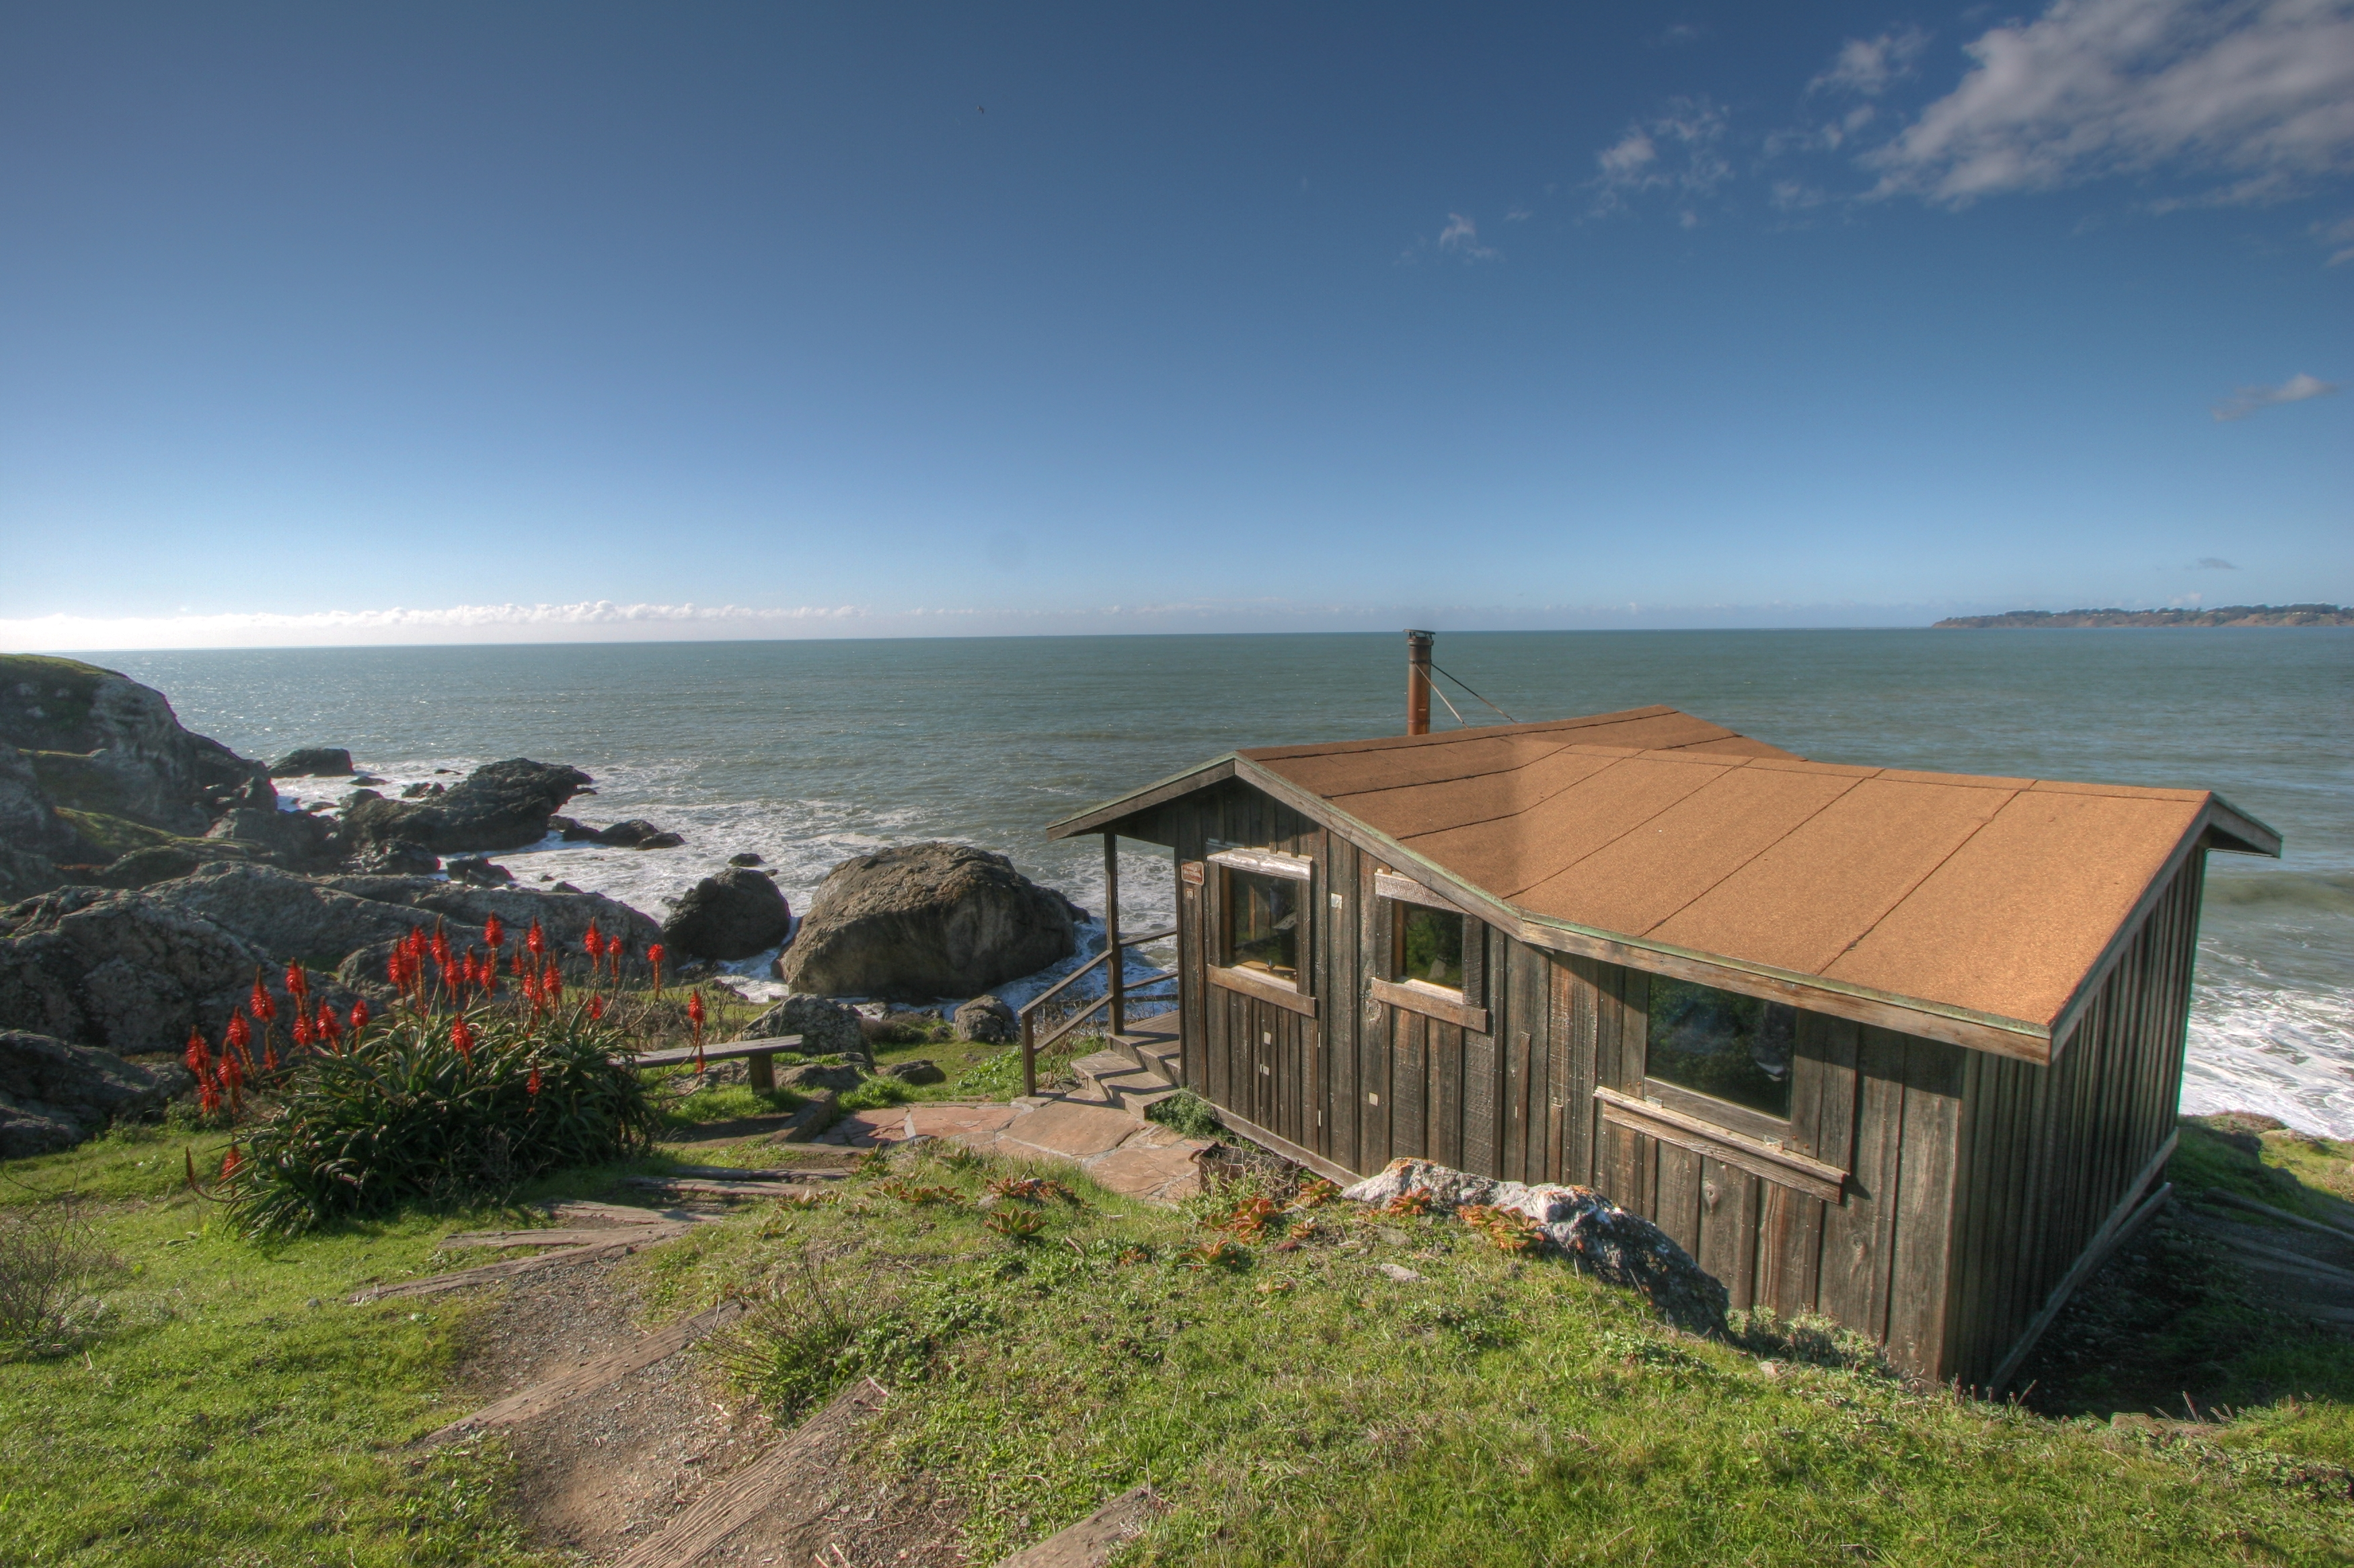 A wooden cabin on the edge of a cliff. There is a body of water and a beach in the distance.